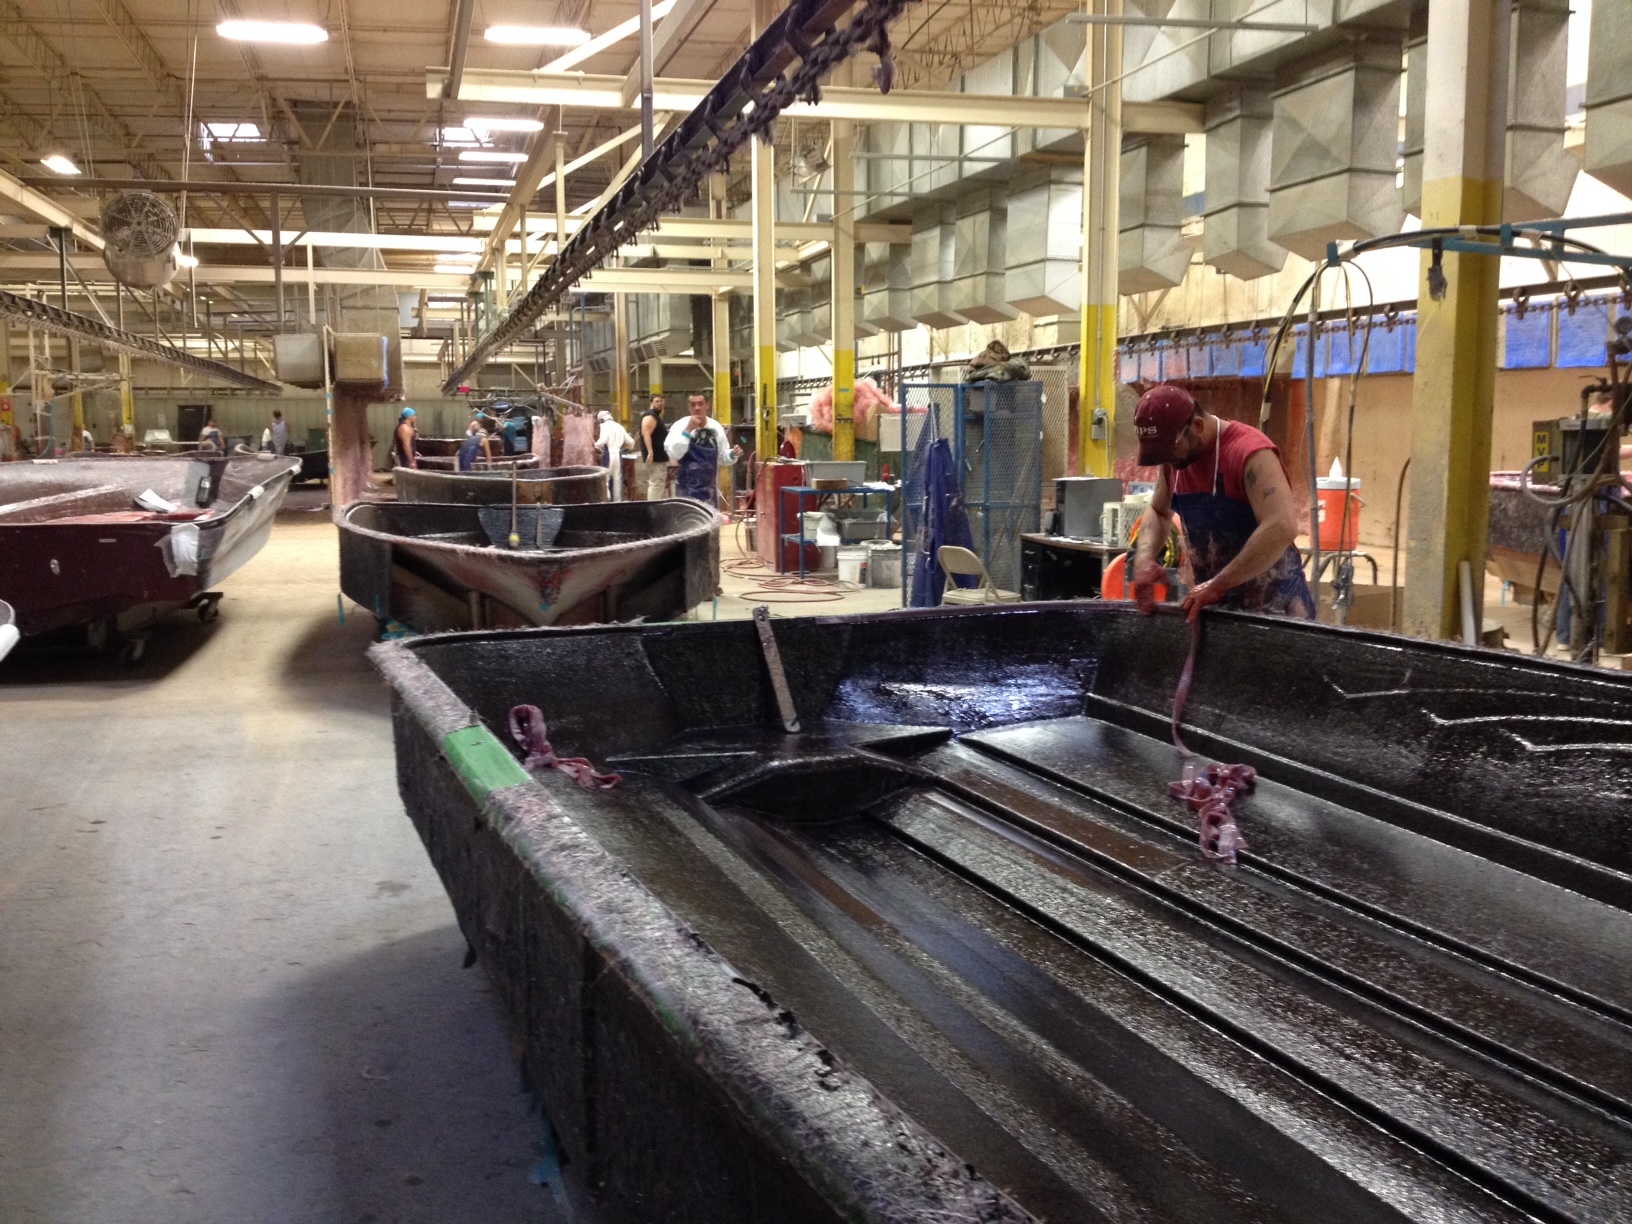 Lots of hard work goes into each boat! Pretty neat to see how a Ranger is built from start to finish.